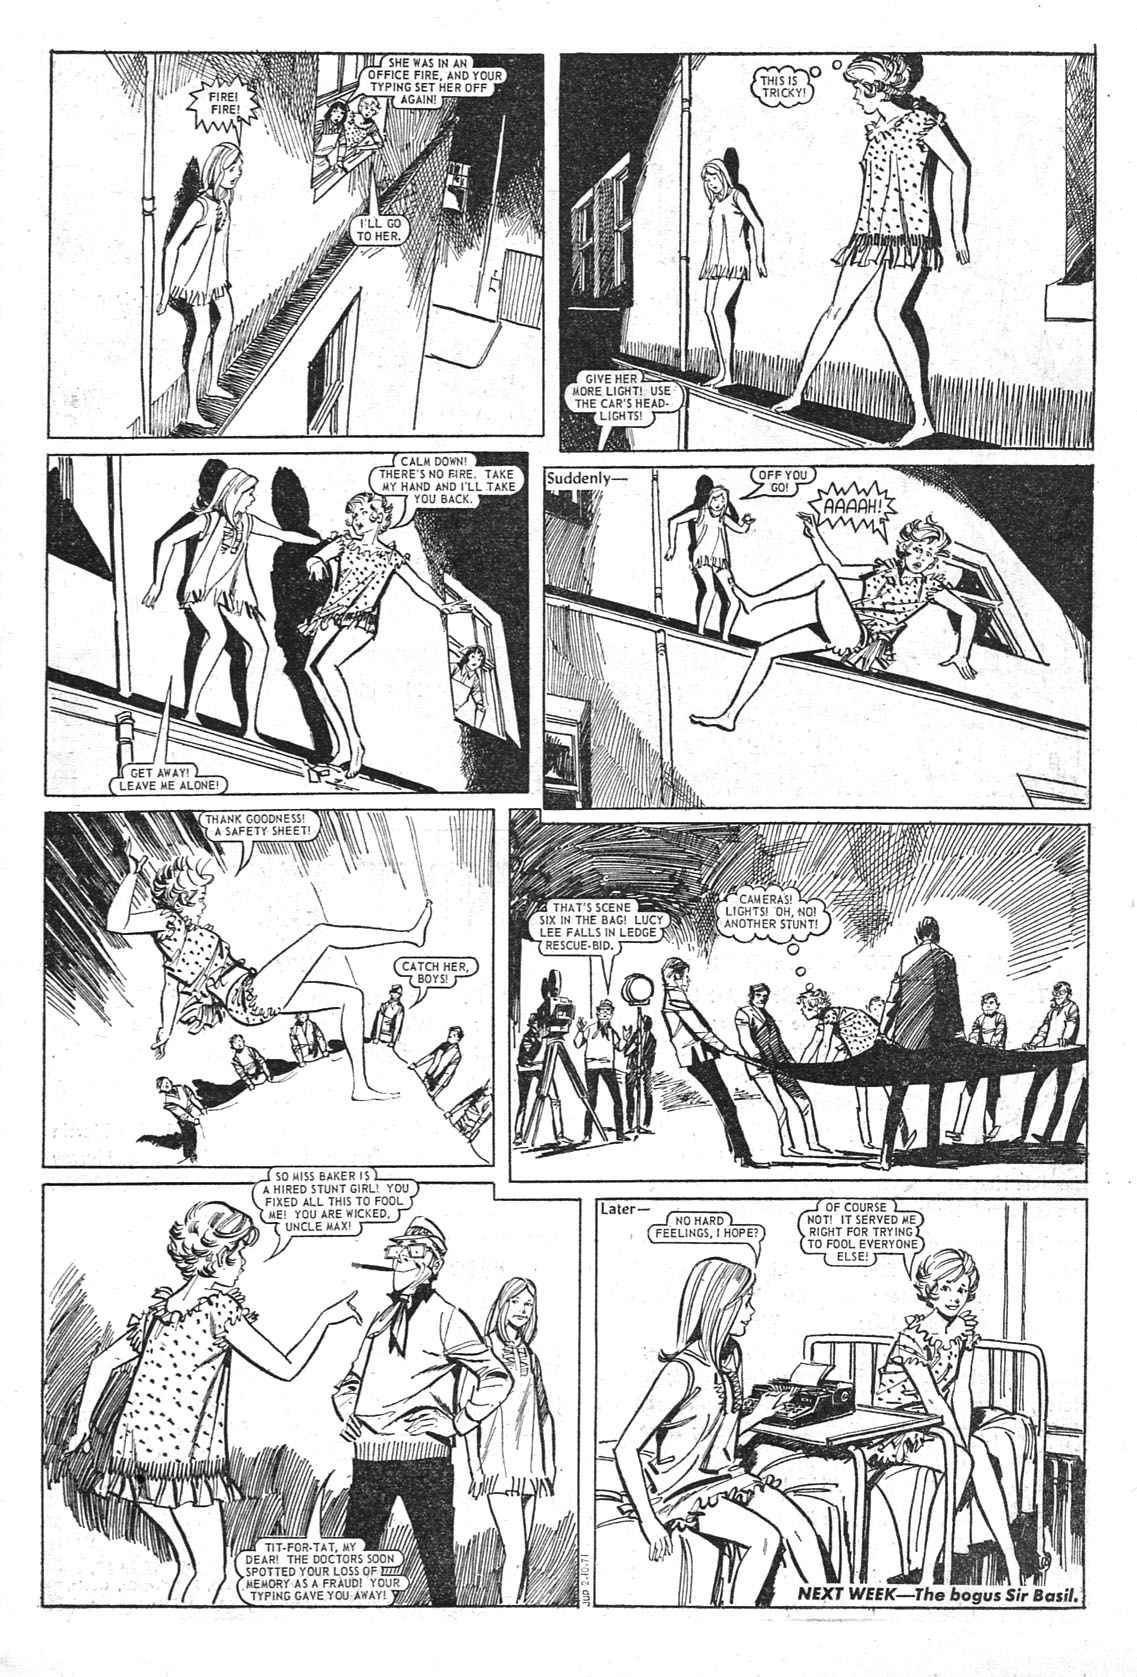 Read online Judy comic -  Issue #612 - 7